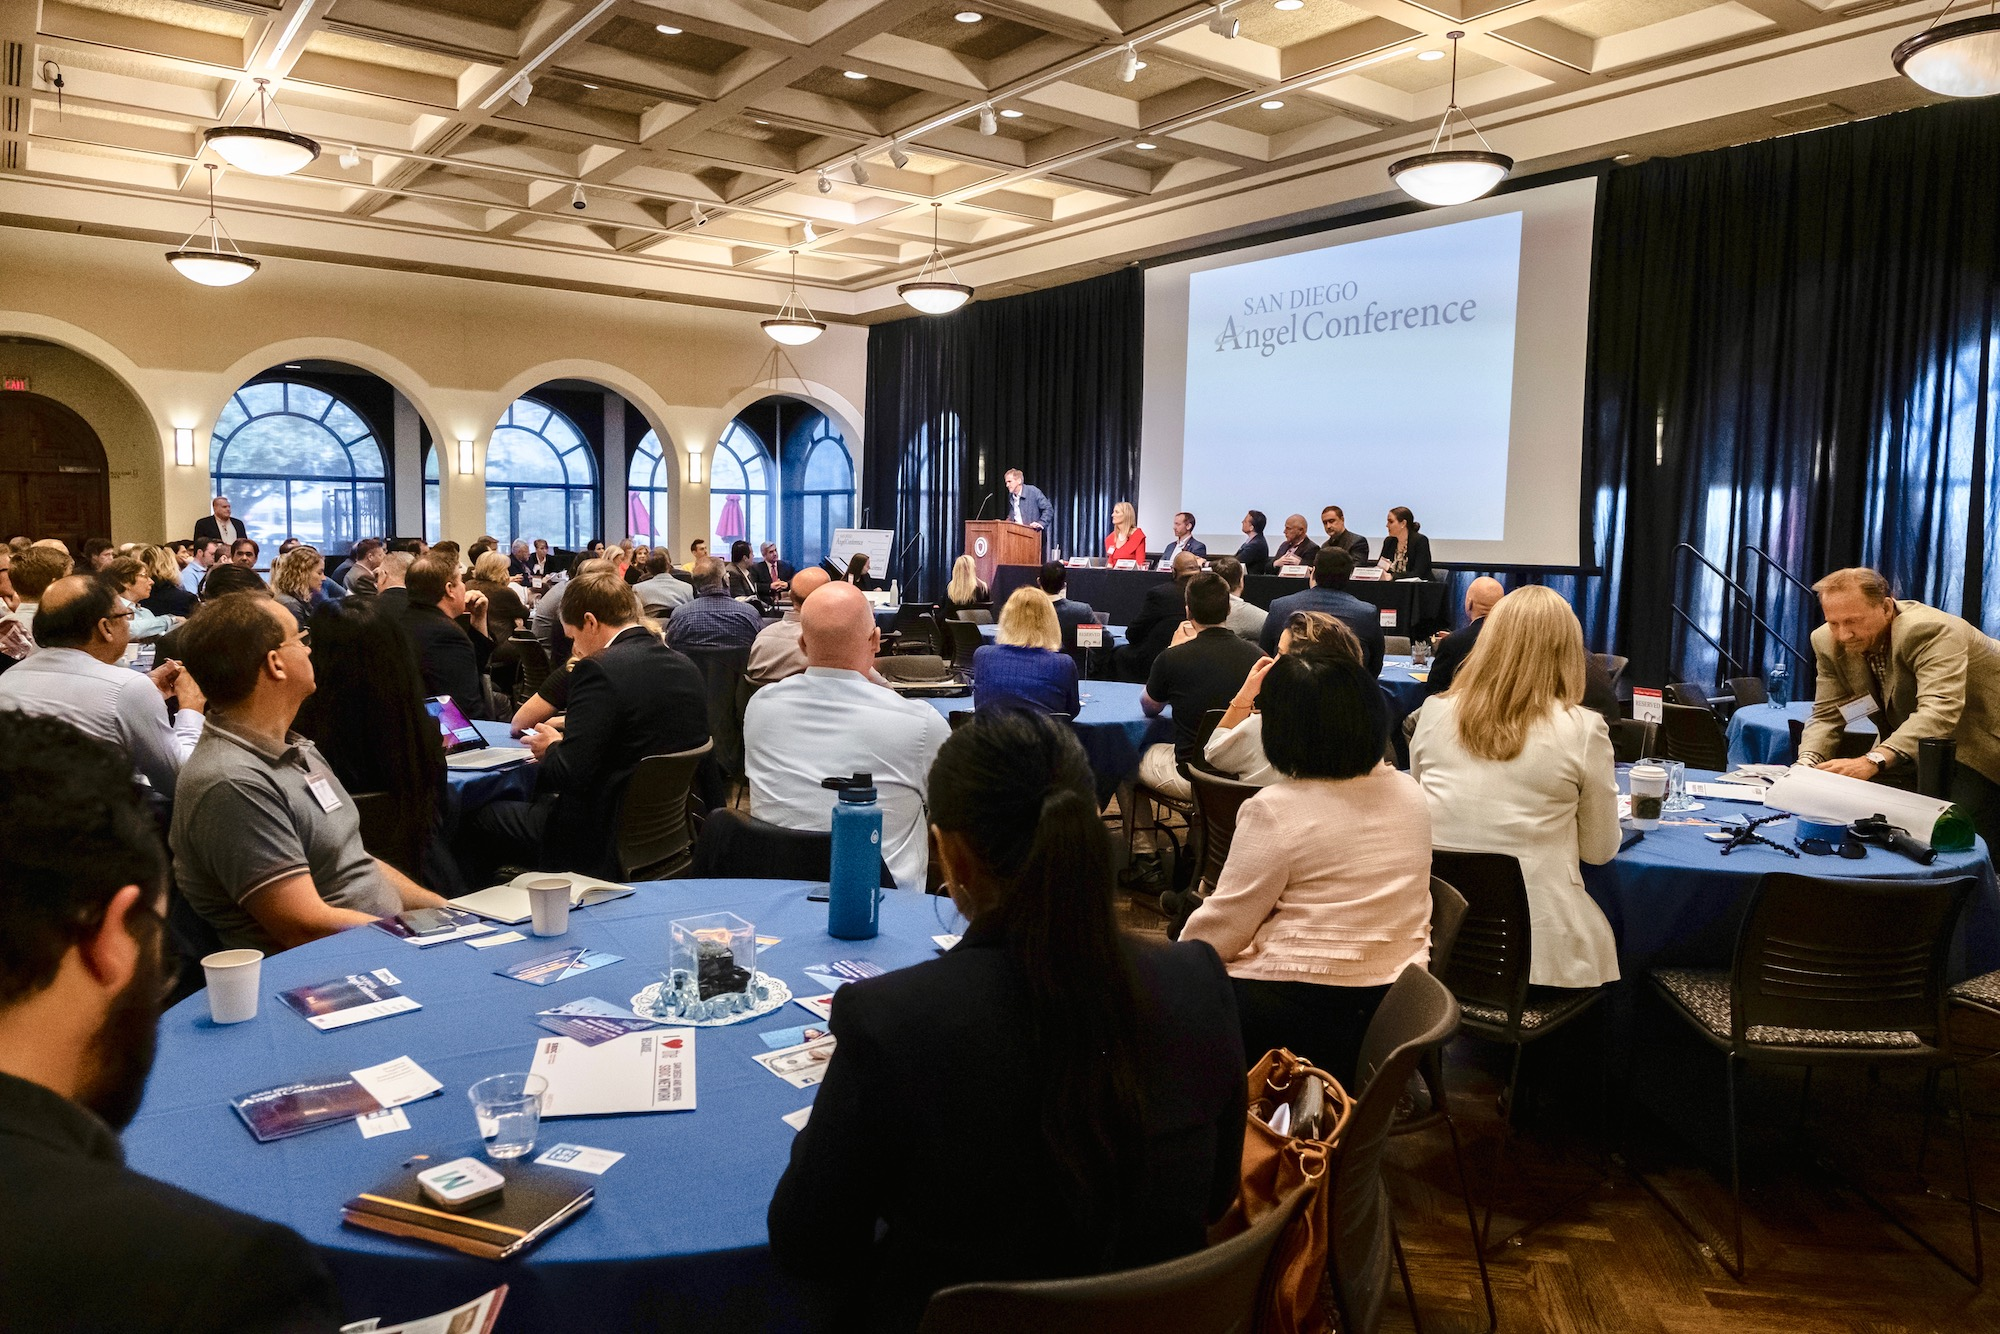 Second-annual San Diego Angel Conference held at the University of San Diego